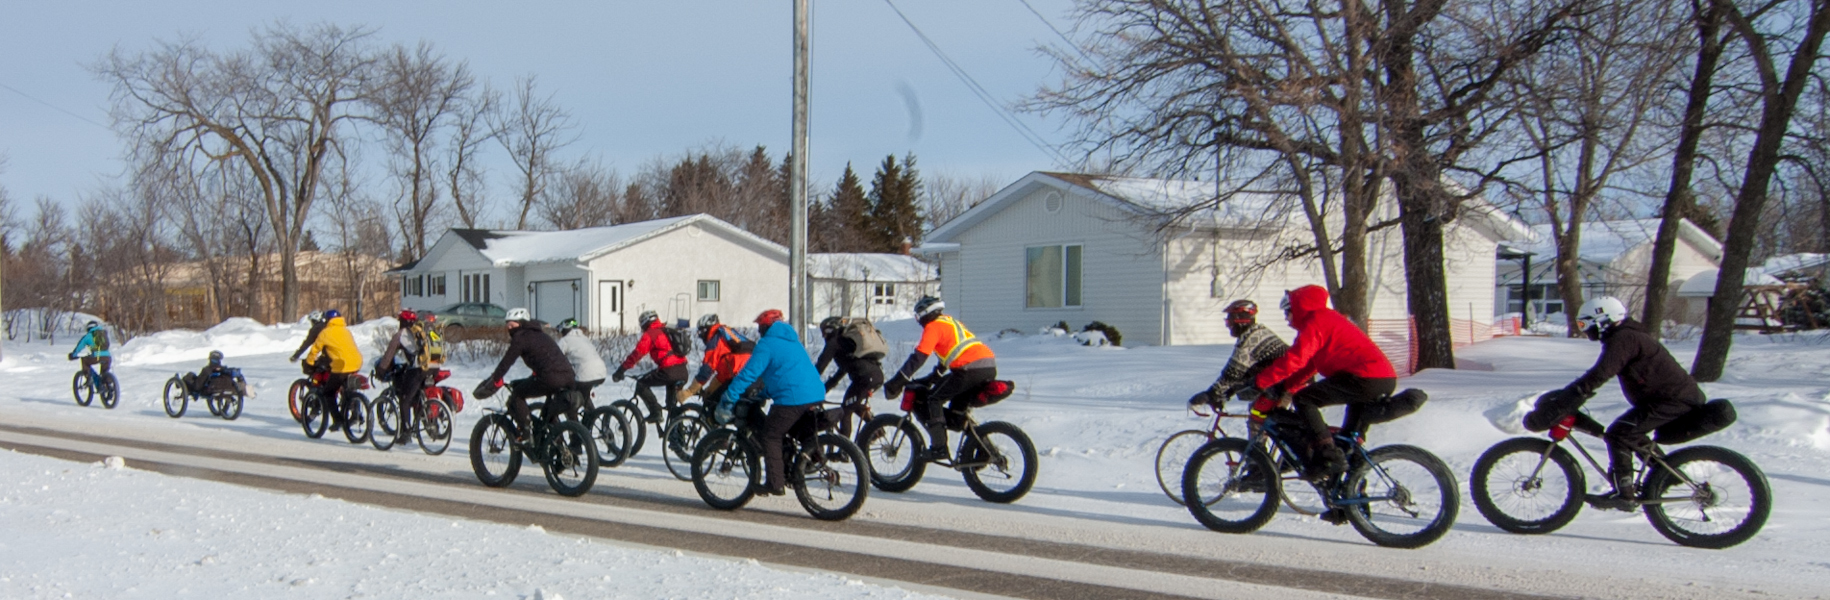 A swarm of bikers leaving St. Adolphe on Saturday morning